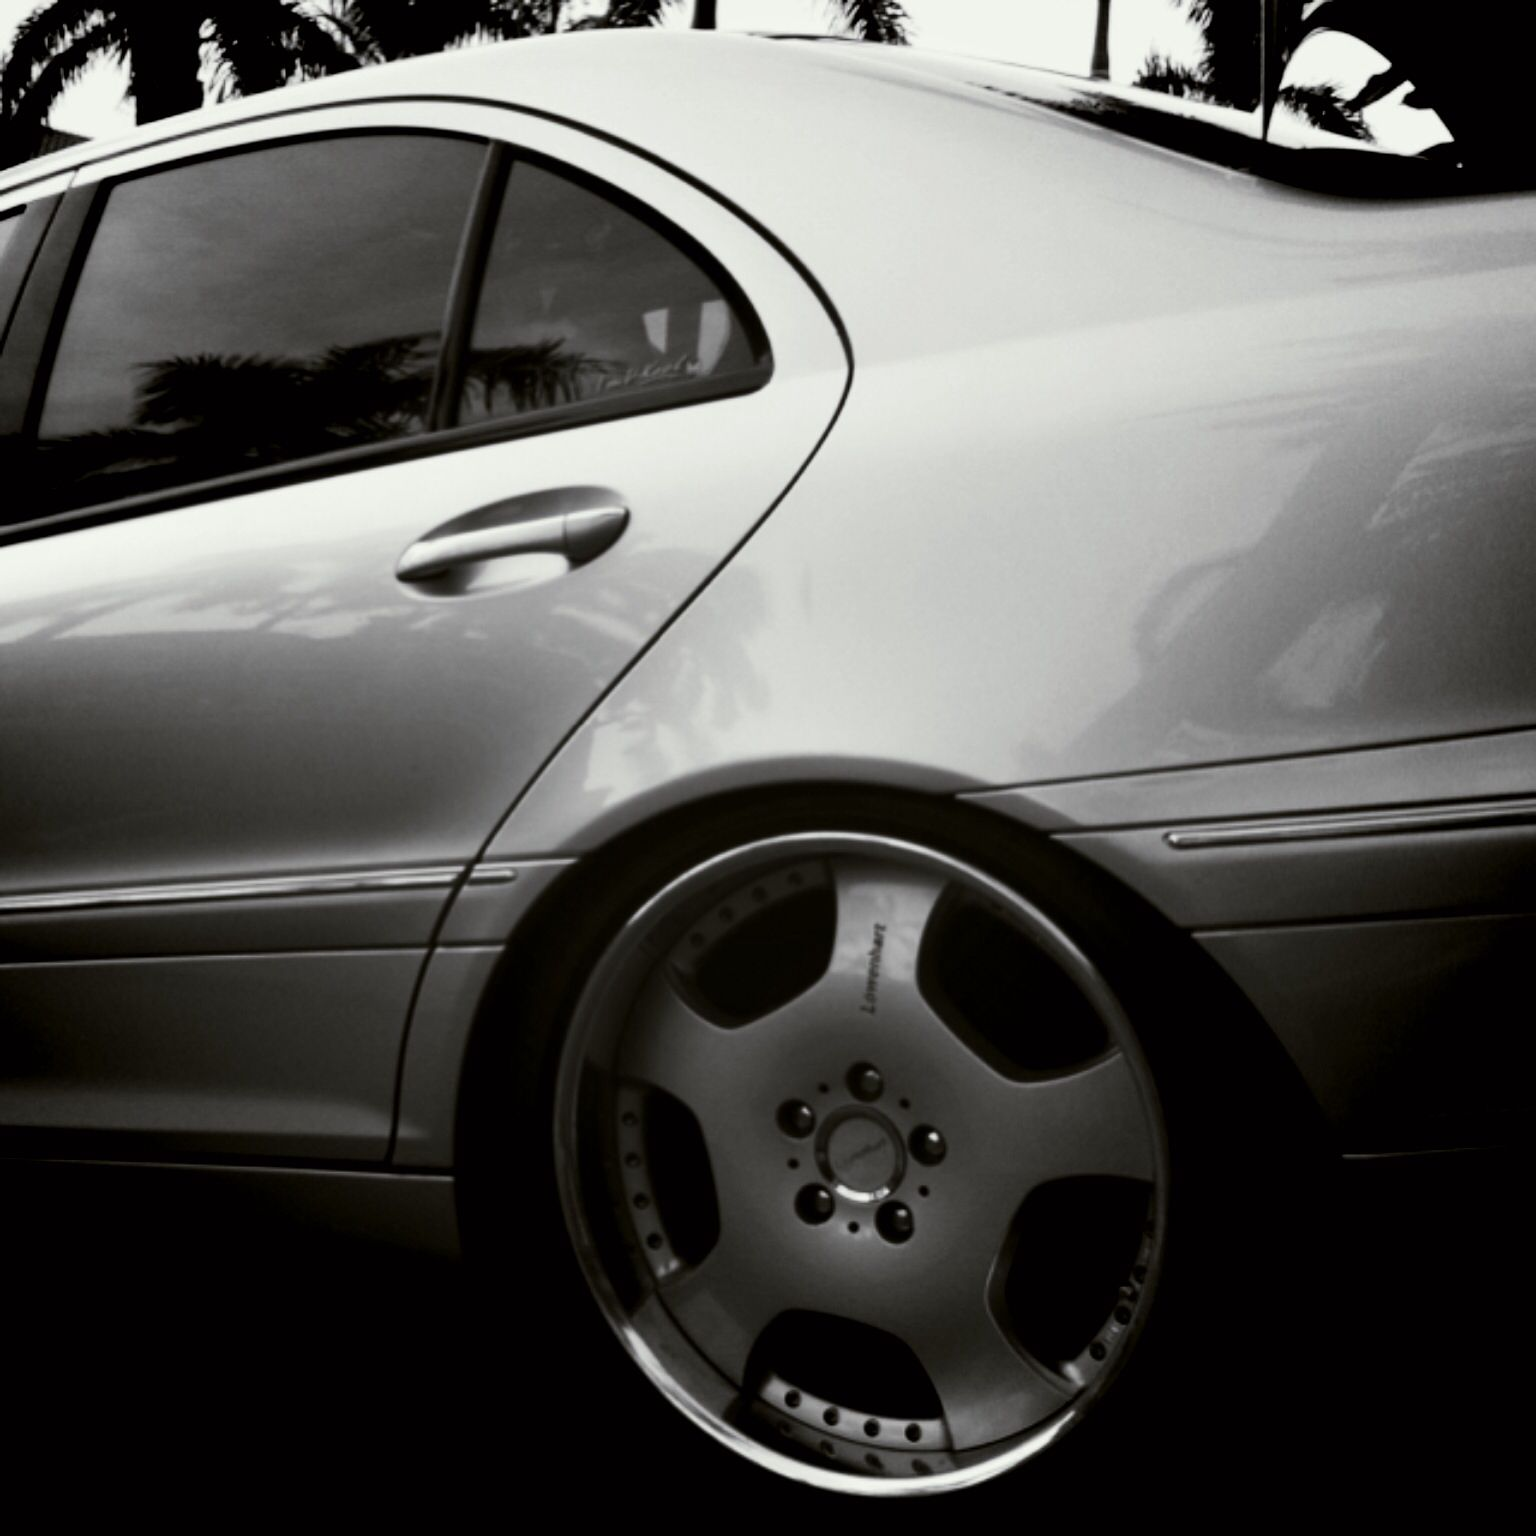 W203 On Xposition Cargasm Mercedes Benz Cars